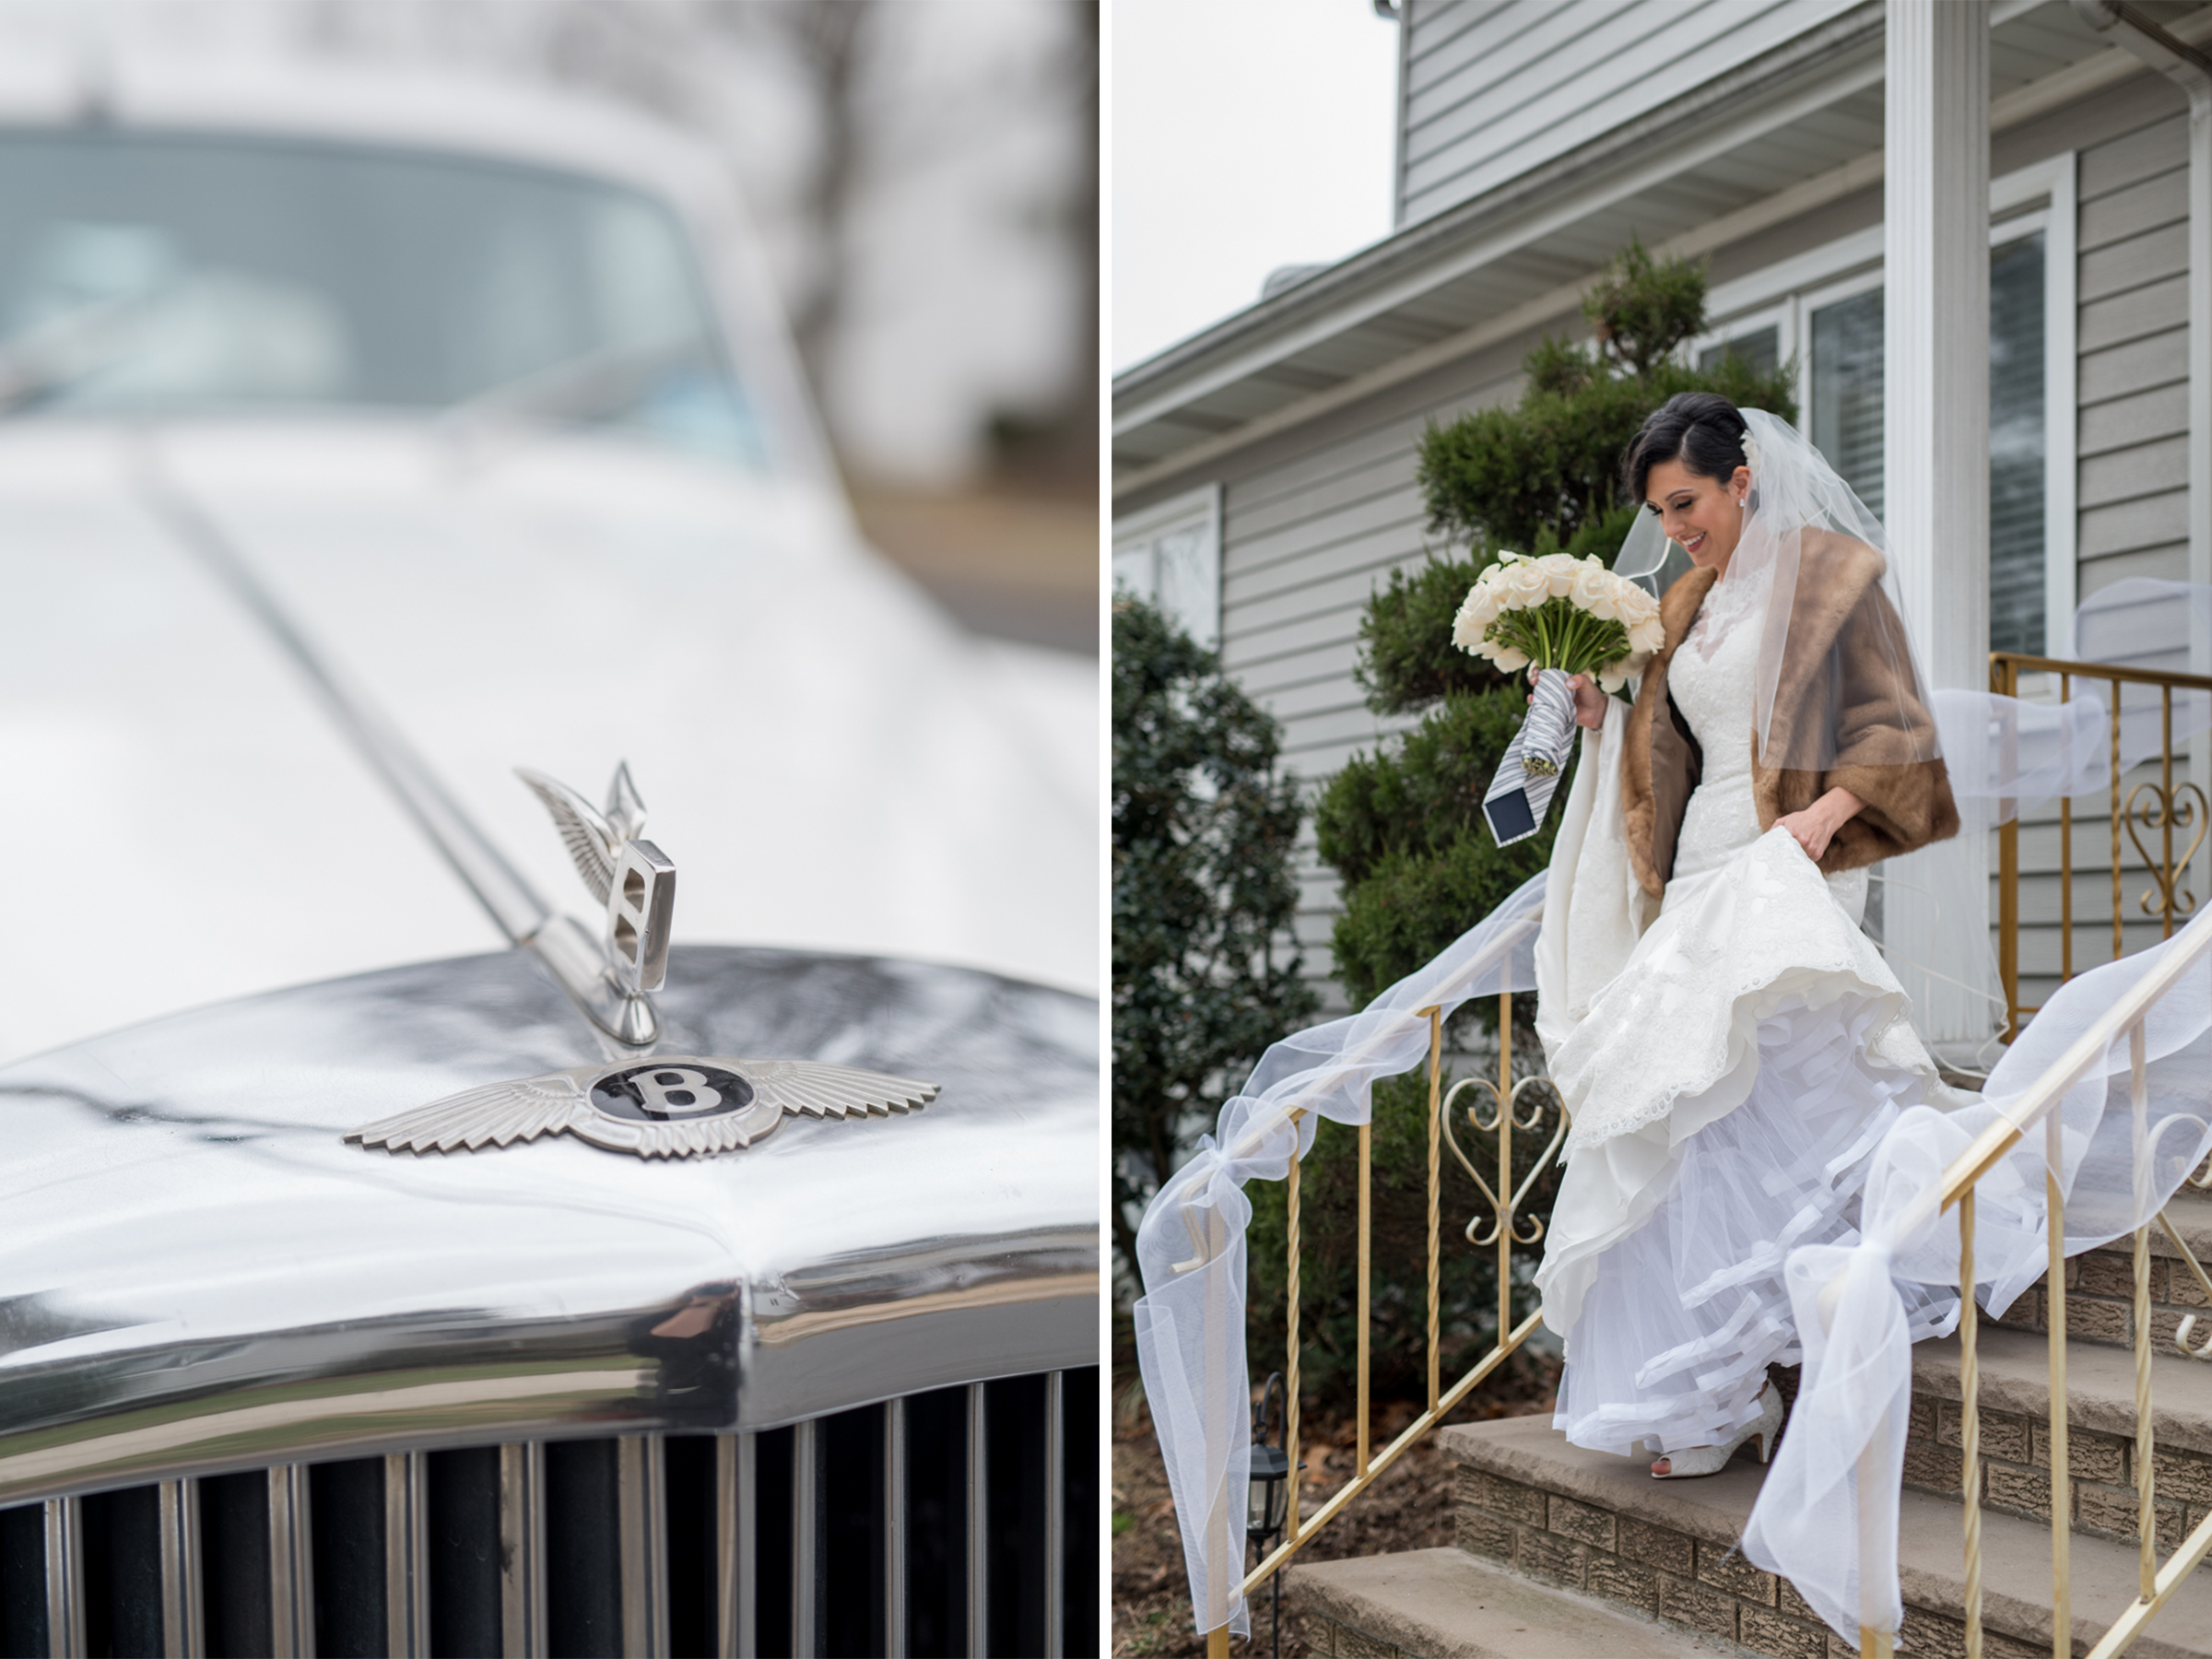 Michelle+Joe- Classic Bentley Bride Leaves for Church - Ryland Inn Winter Wedding - New Jersey - Olivia Christina Photo.jpg